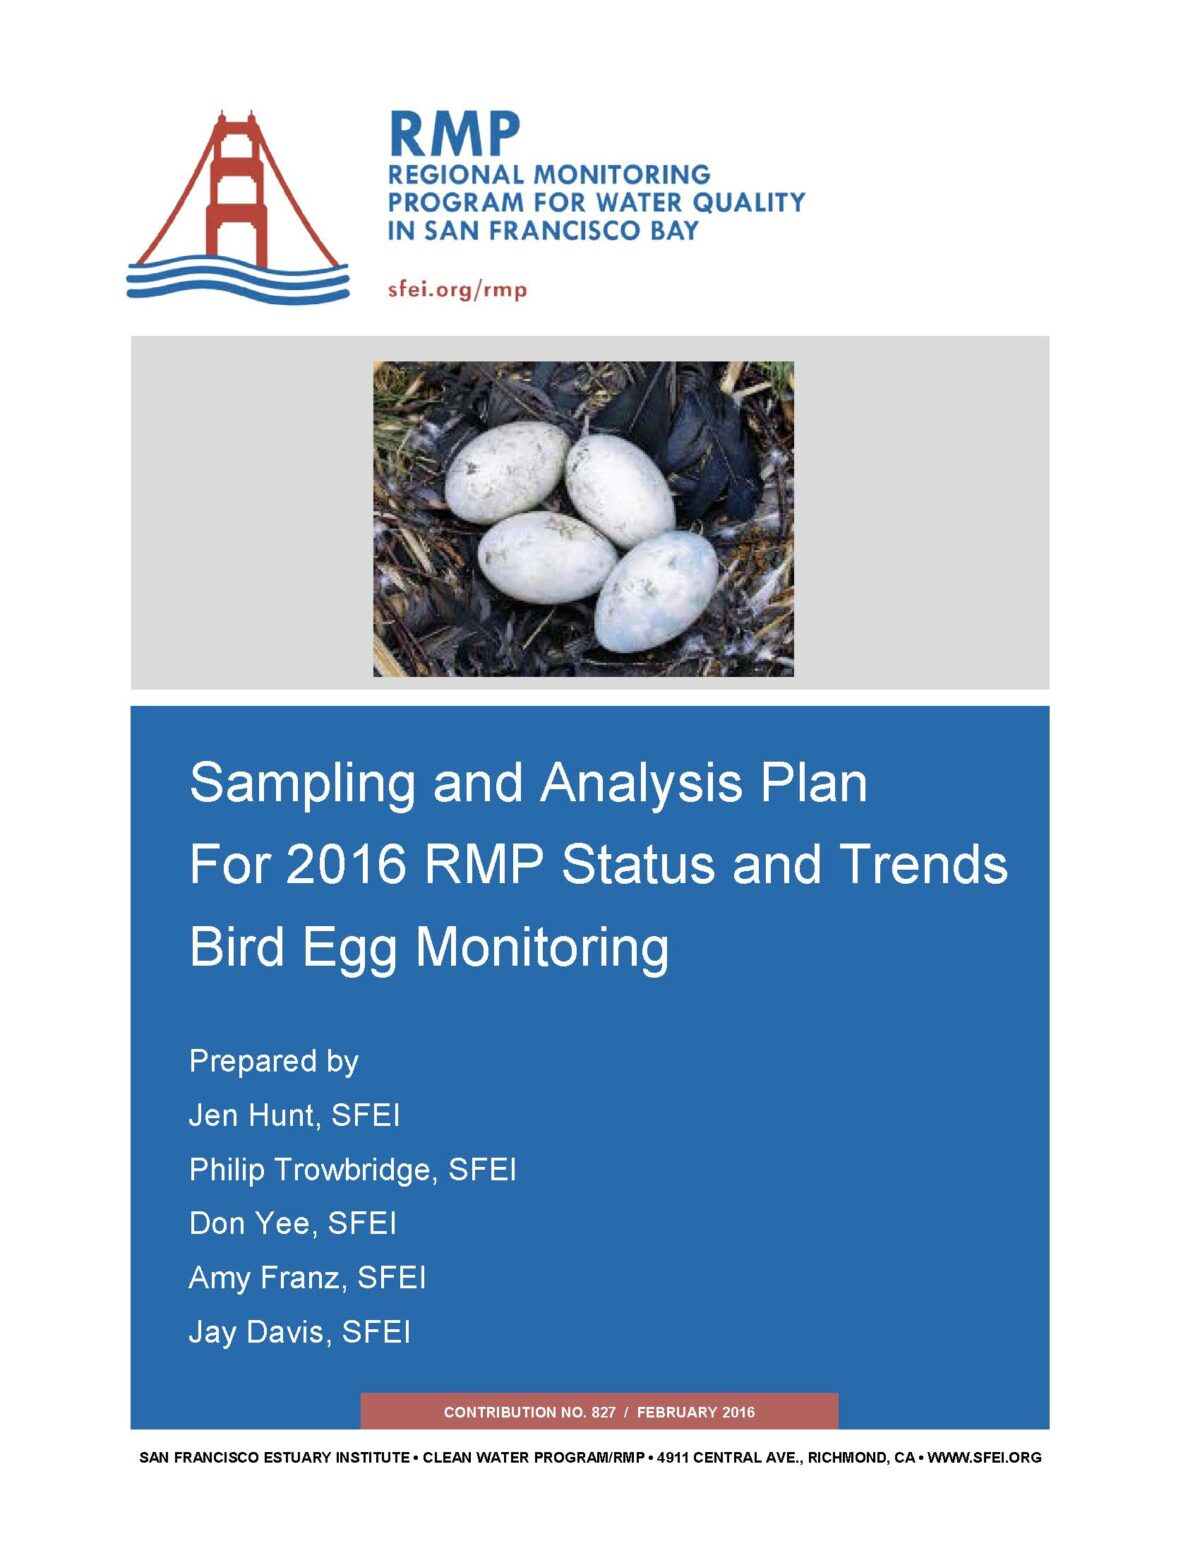 Sampling and Analysis Plan for 2016 RMP Status and Trends Bird Egg Monitoring